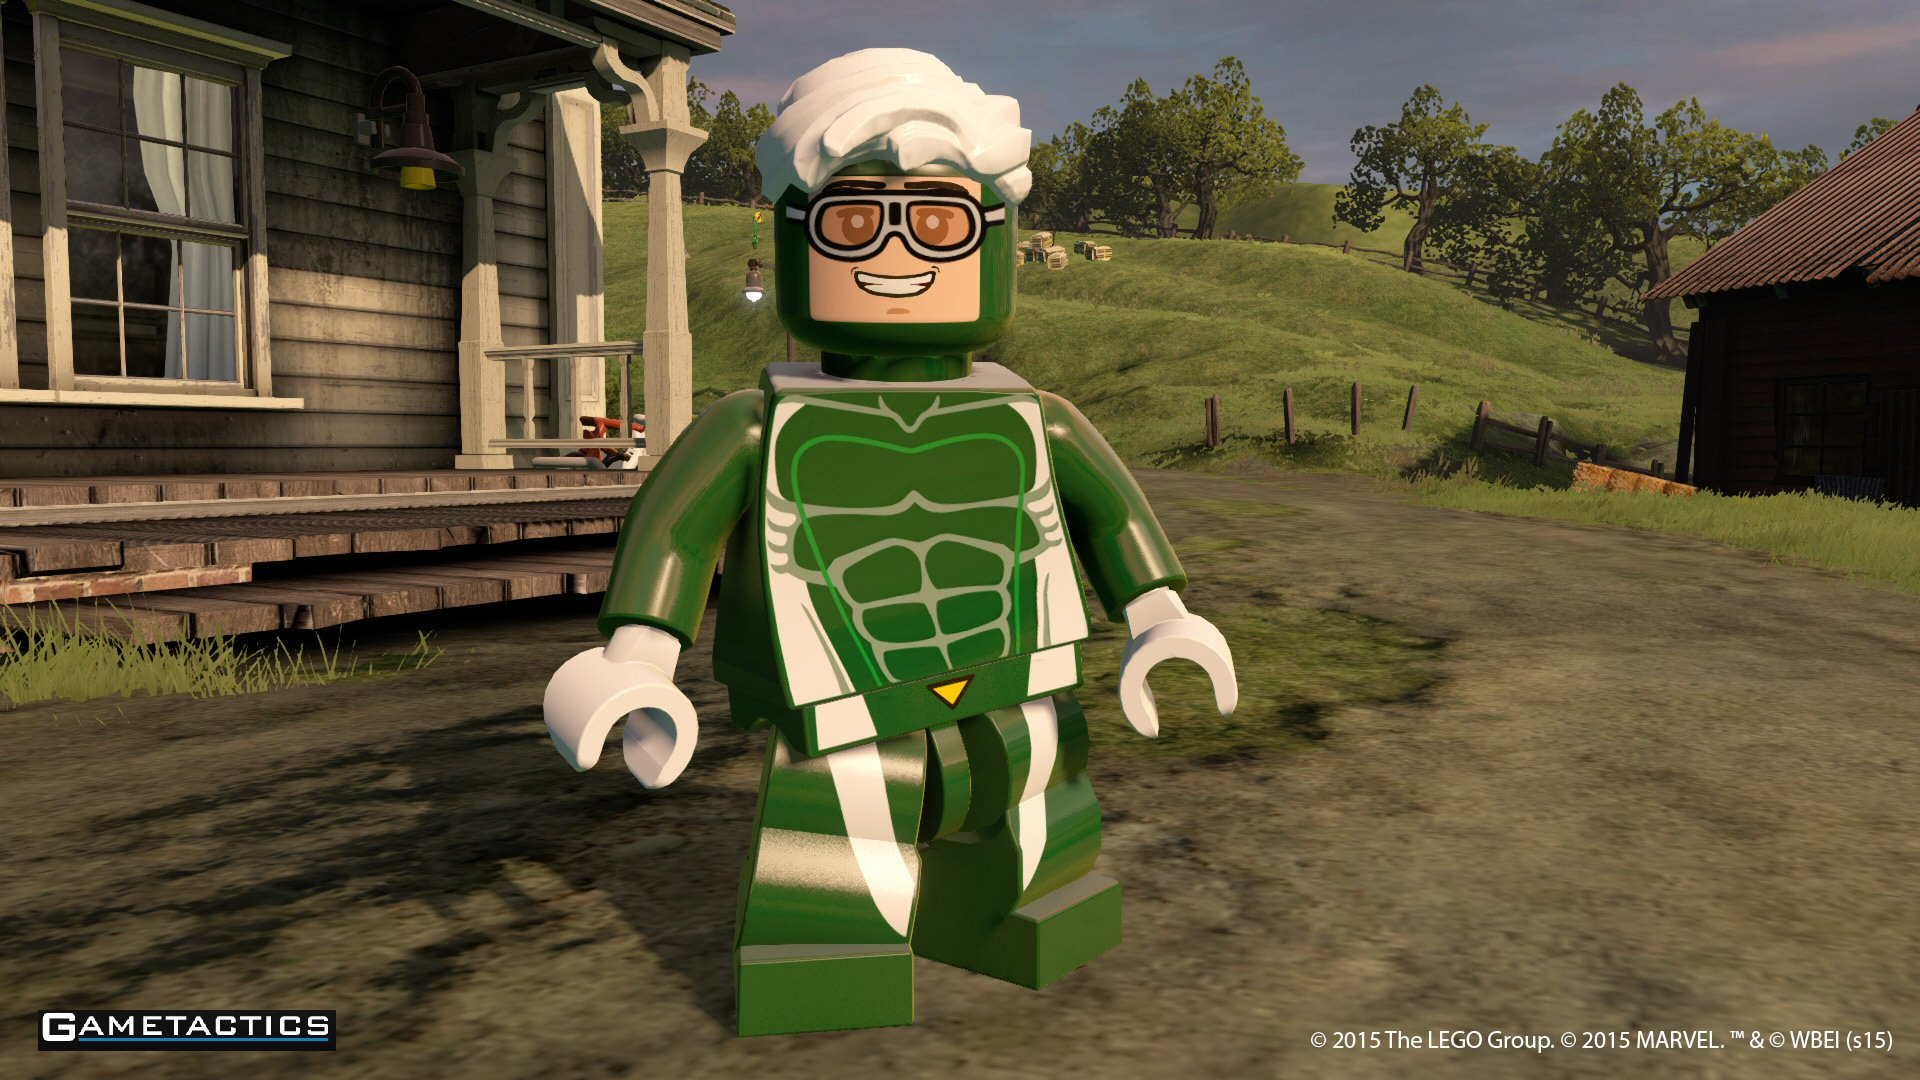 ... . Dinosaurs and Marvel superheroes will be LEGO-fied this June